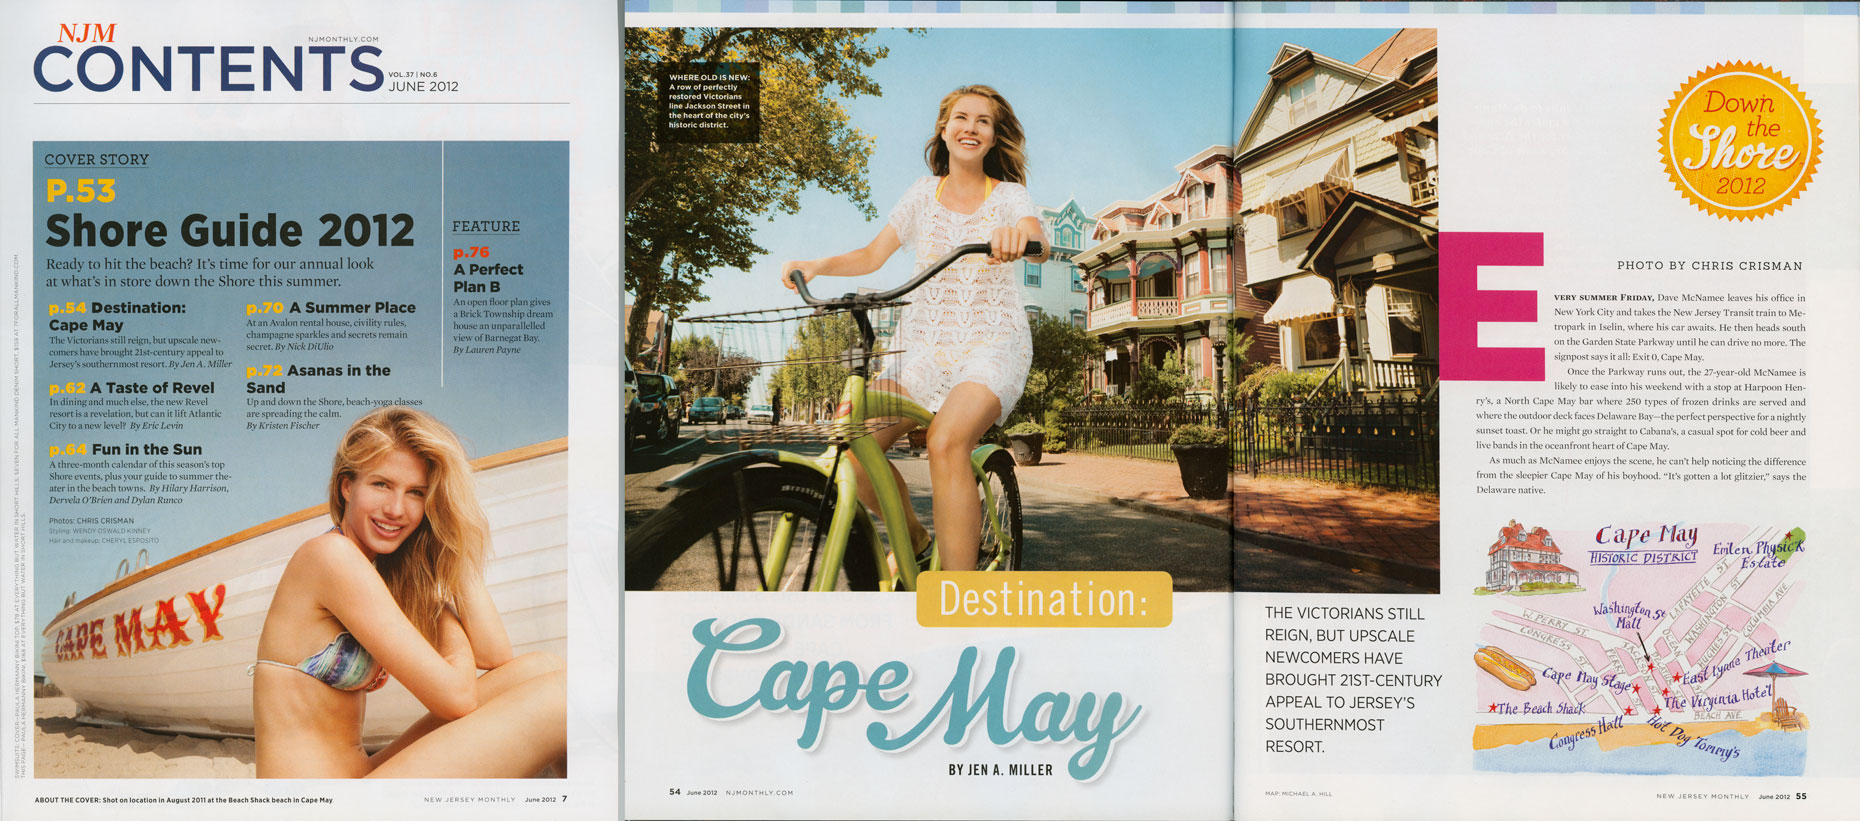 New Jersey Monthly: Shore Guide. TOC and Feature. Summer 2012